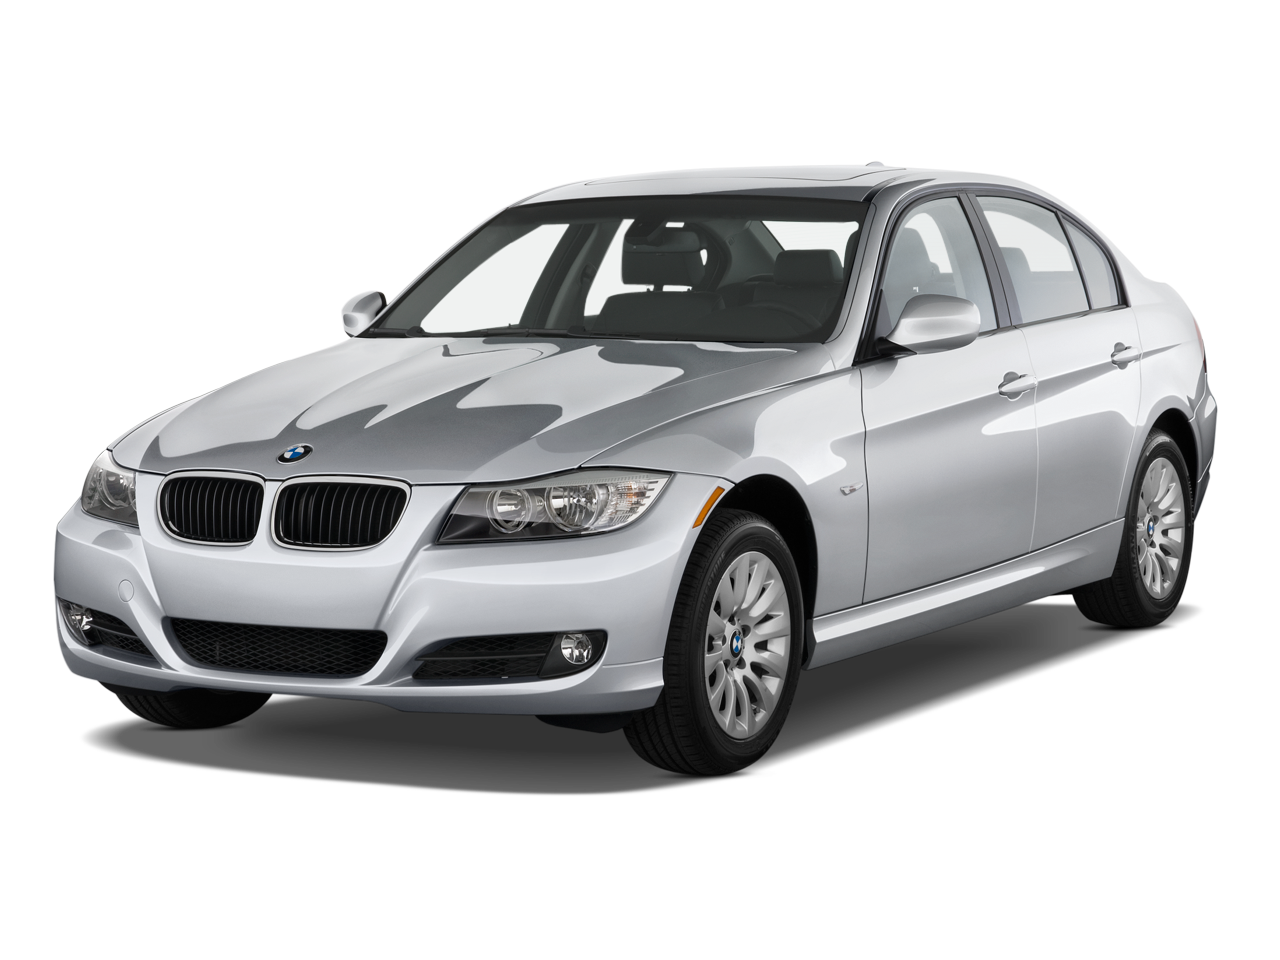 2009 Bmw 335i Coupe Bmw Luxury Sport Coupe Review